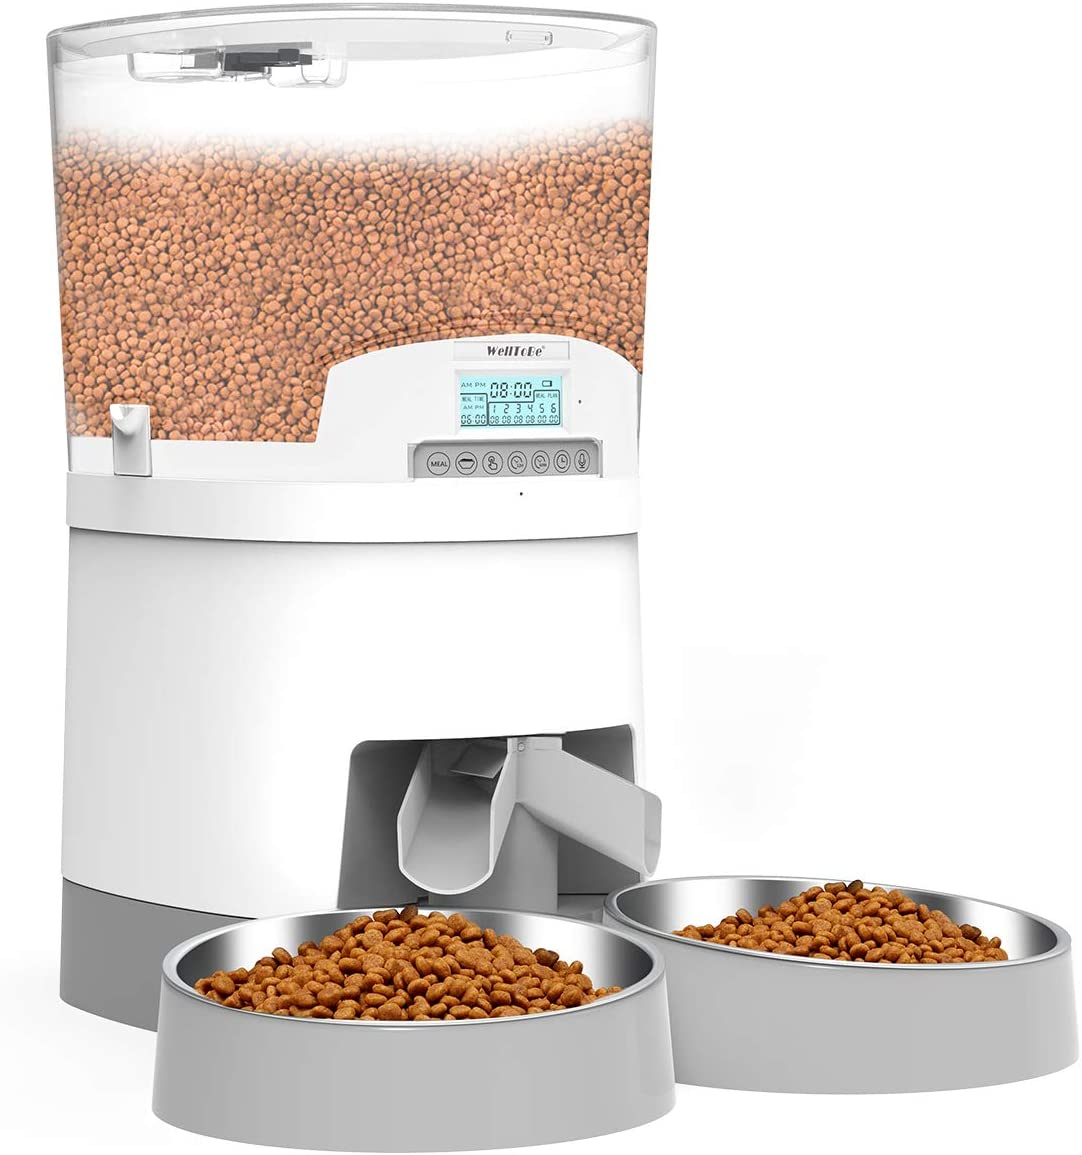 WellToBe 7L Automatic Cat Feeder for Two Animals,Pet Feeder Dog Food Dispenser Transparent Hopper Includes Double Bowls for Cats&Large Dogs,up to 6 Meals with Portion Control,Voice Recorder,Dual Power